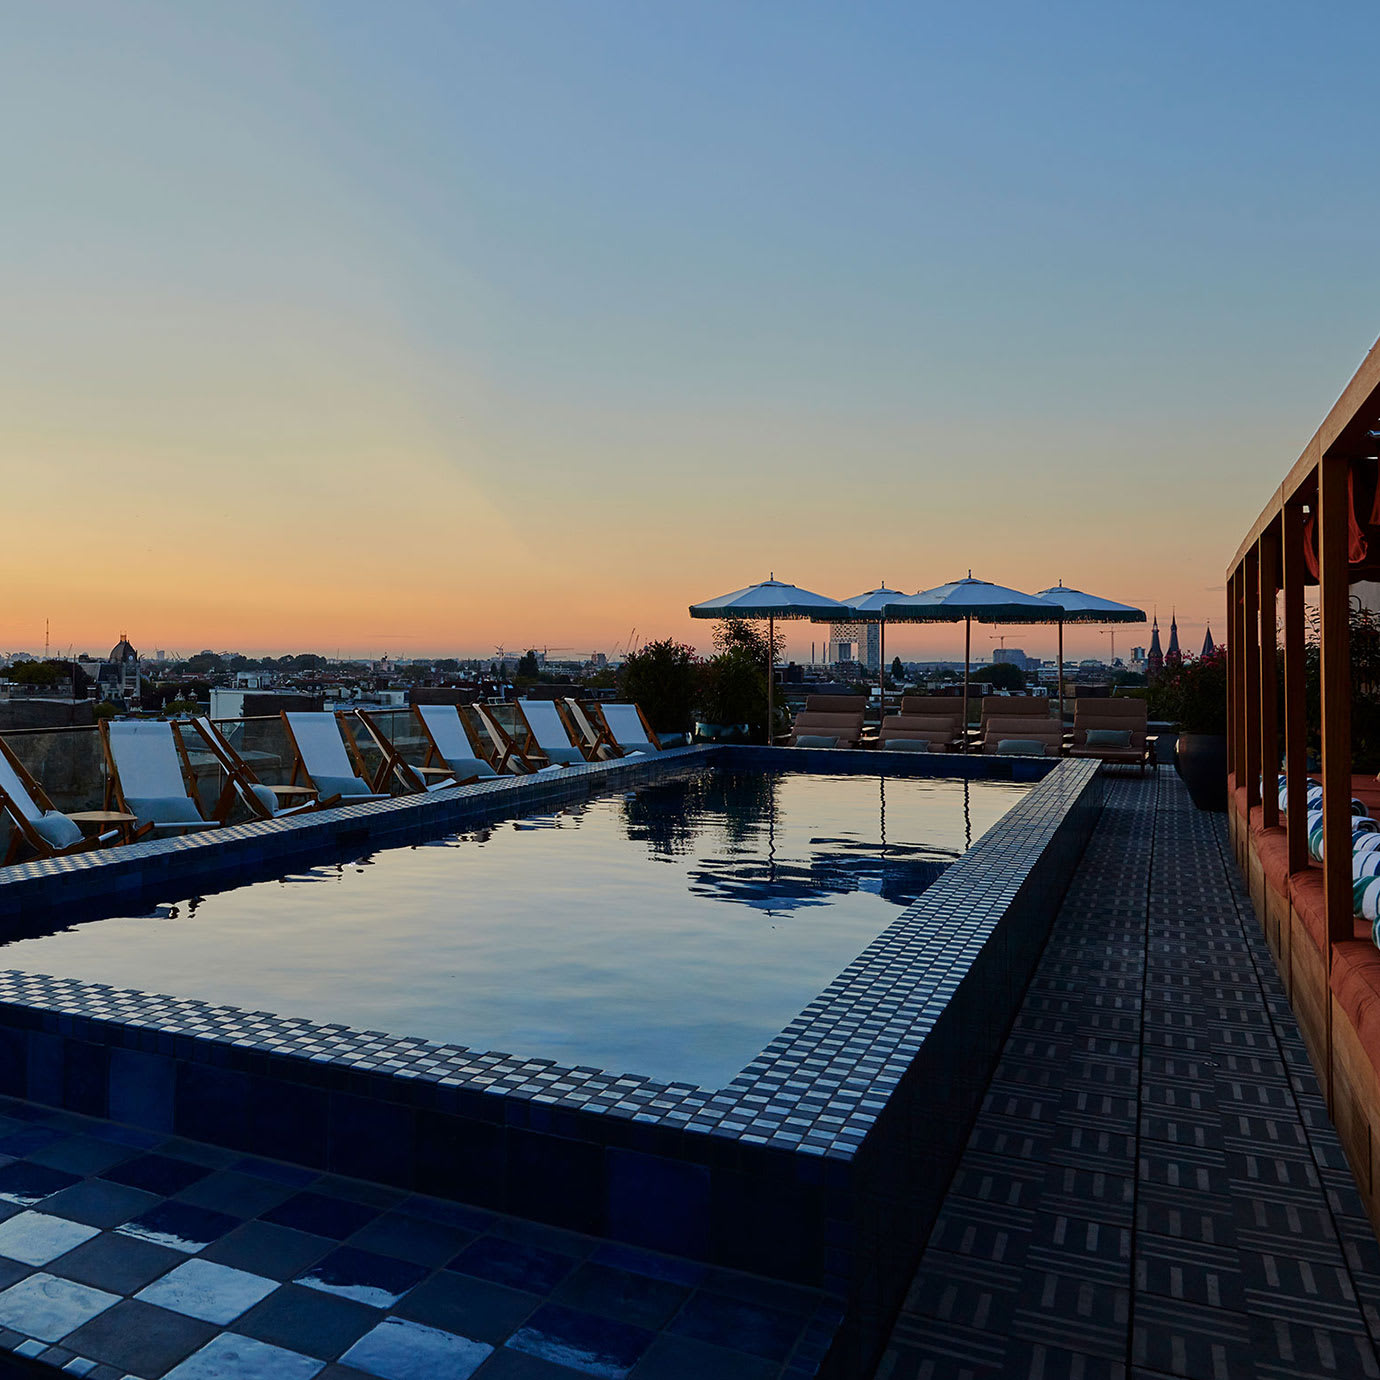 A rooftop pool at sunset.